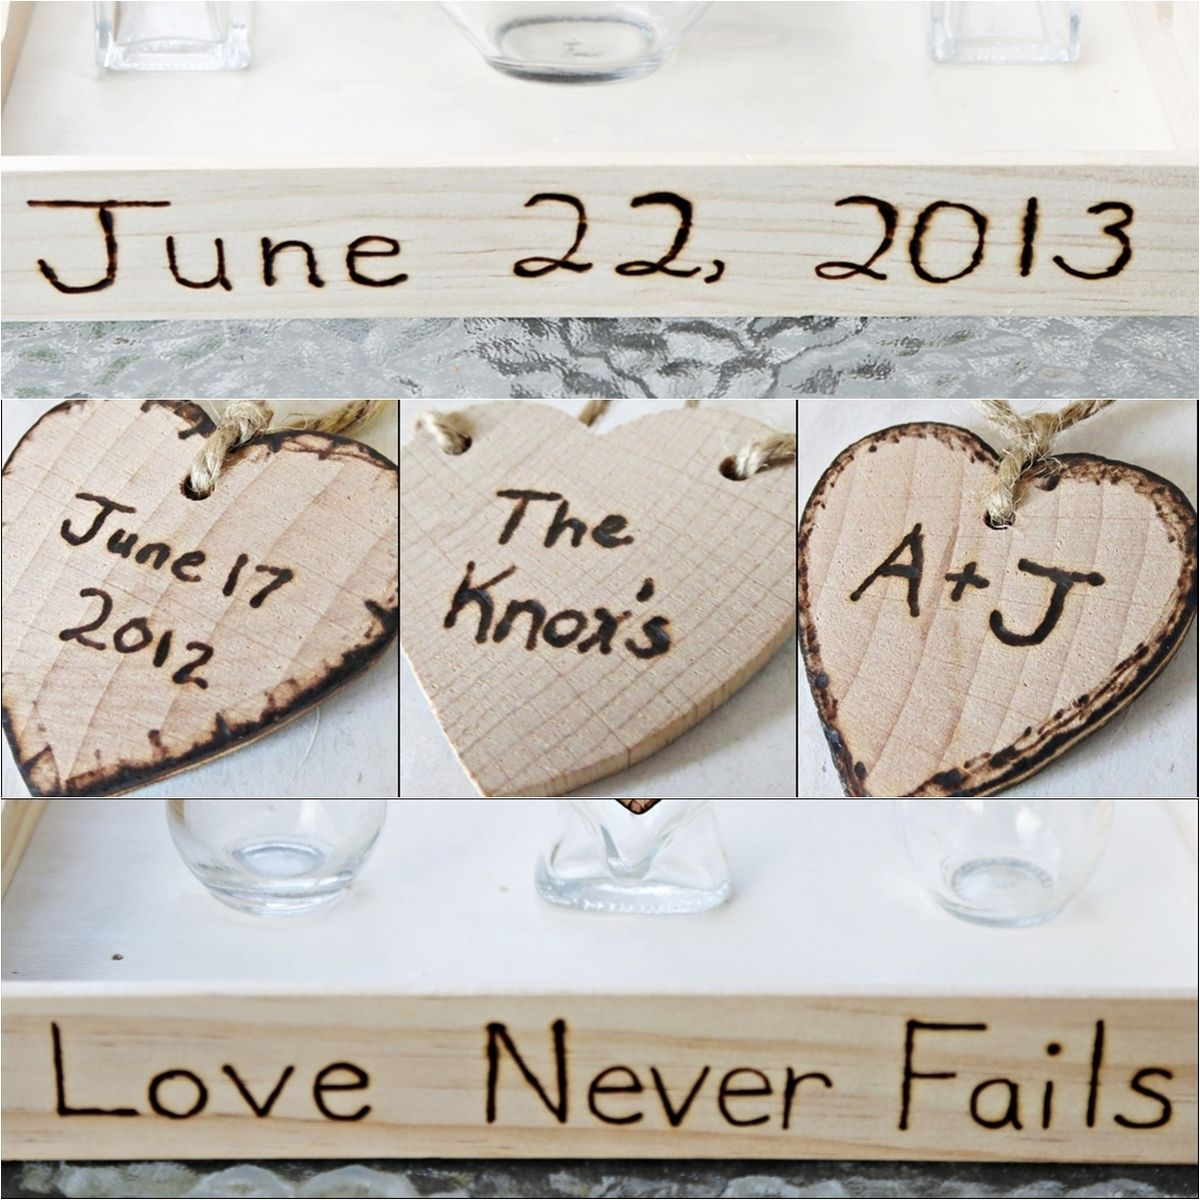 Custom Rustic Heart Vase Wedding Unity Sand Ceremony Set With ...